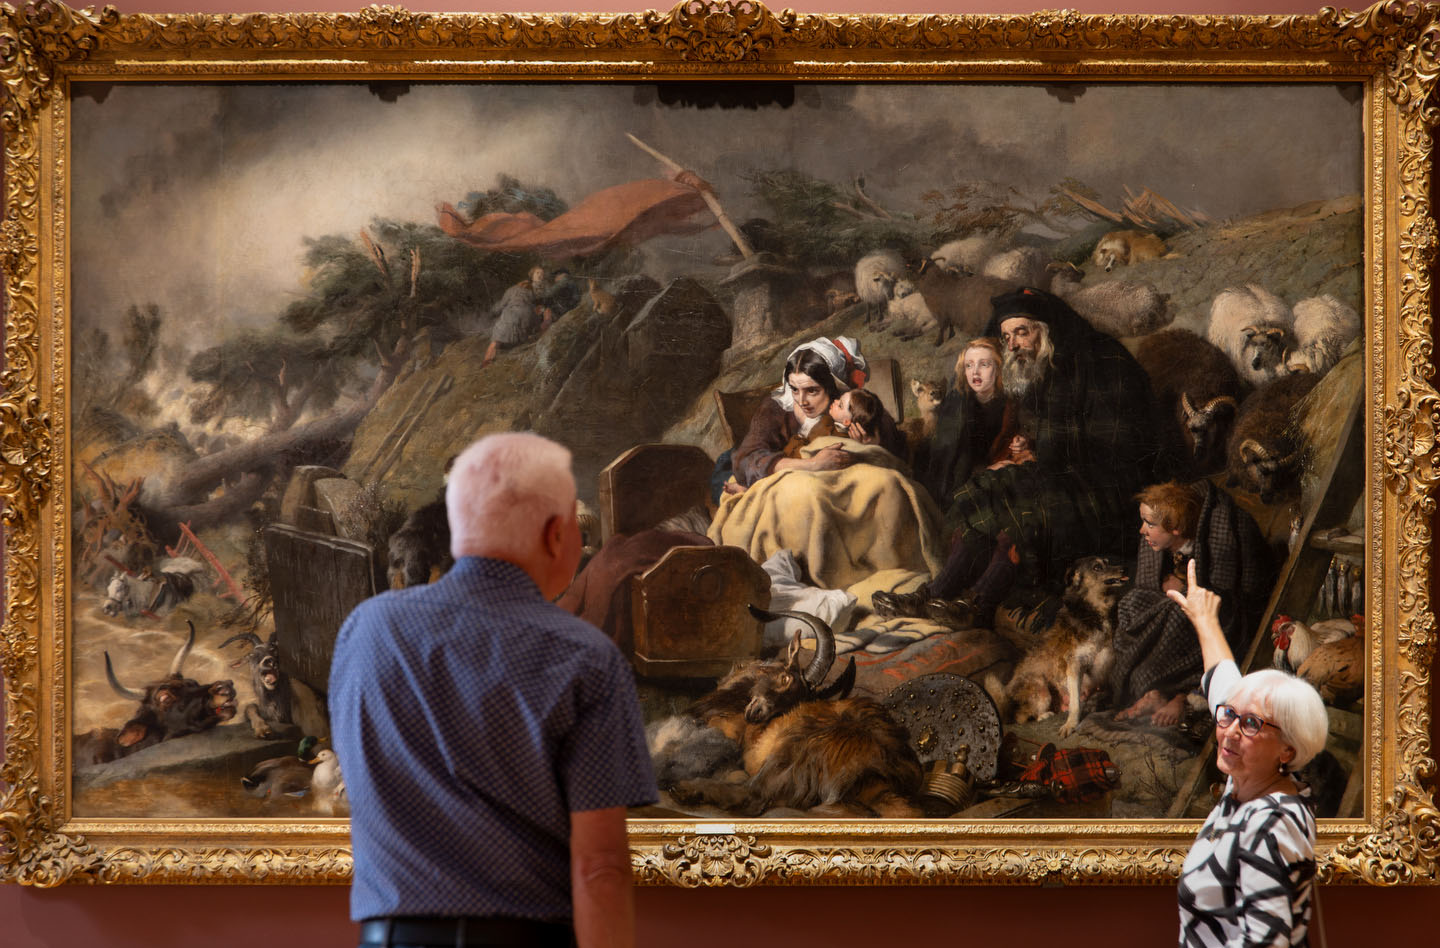 Two older visitors look at a huge painting of figures in an apocalyptic landscape